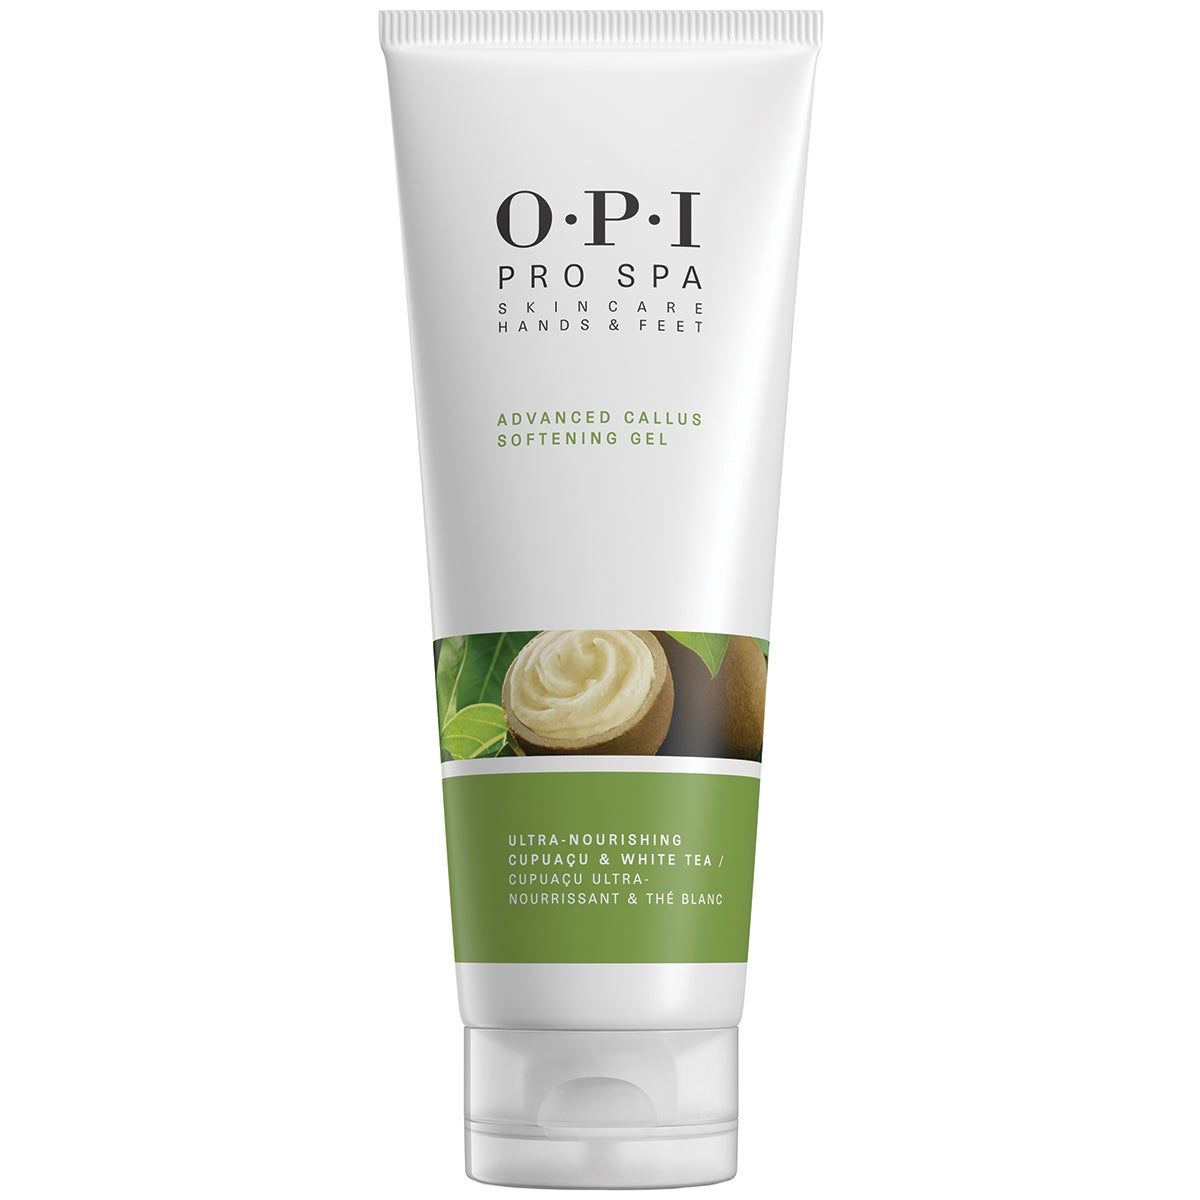 OPI Pro Spa Advanced Callus Softening Gel